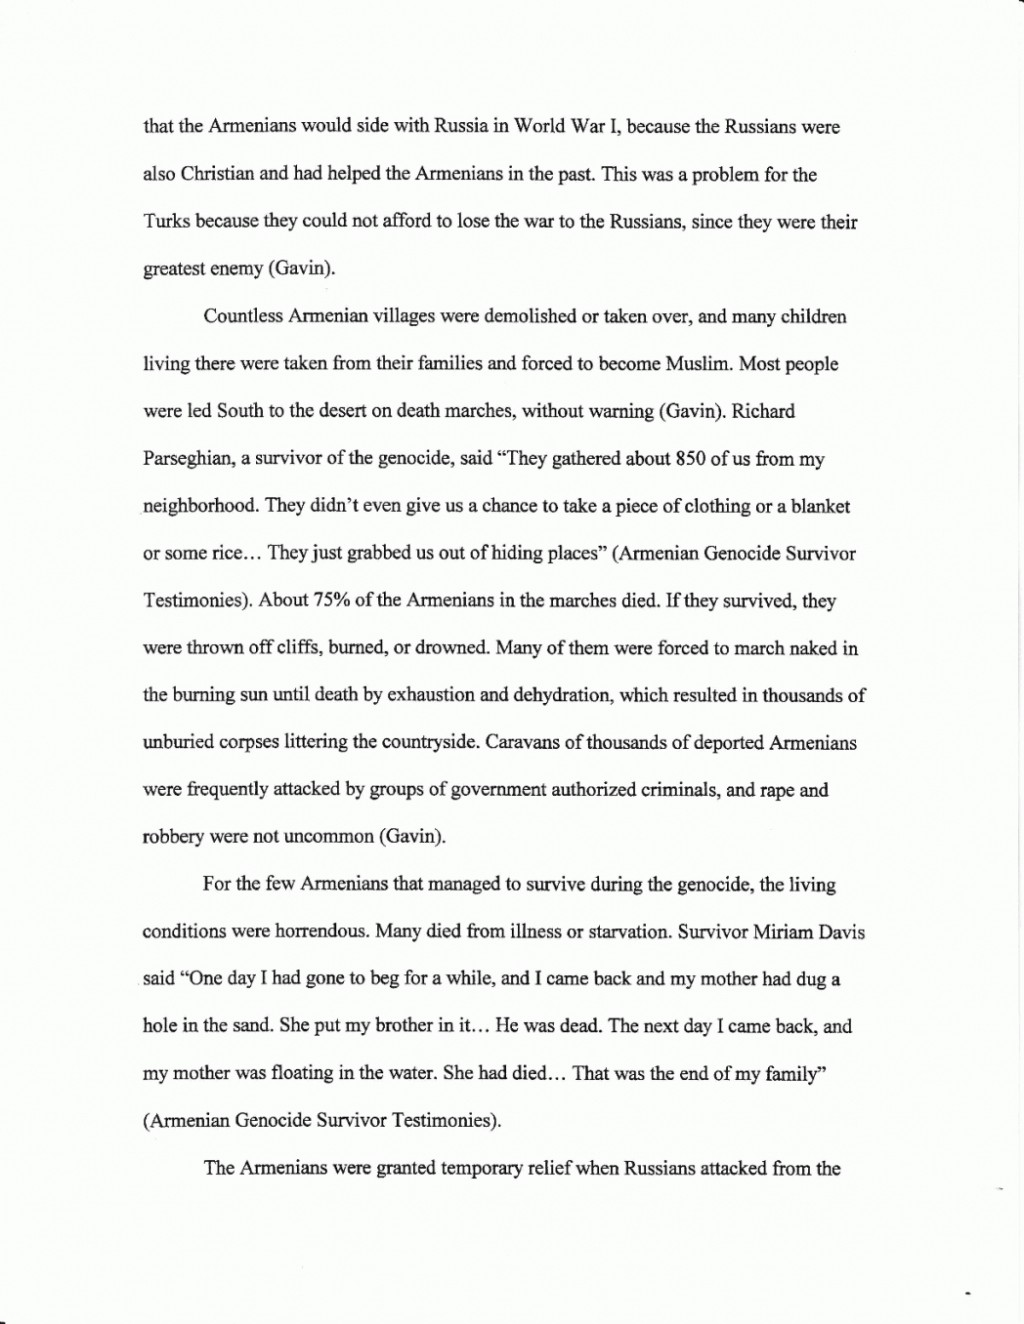 008 Internet Essay Introduction Sample Resume Format For Experienced R Writing Advantages And Disadvantages Of In Hindi 1048x1356 Phenomenal French On Language Wikipedia Kannada Large